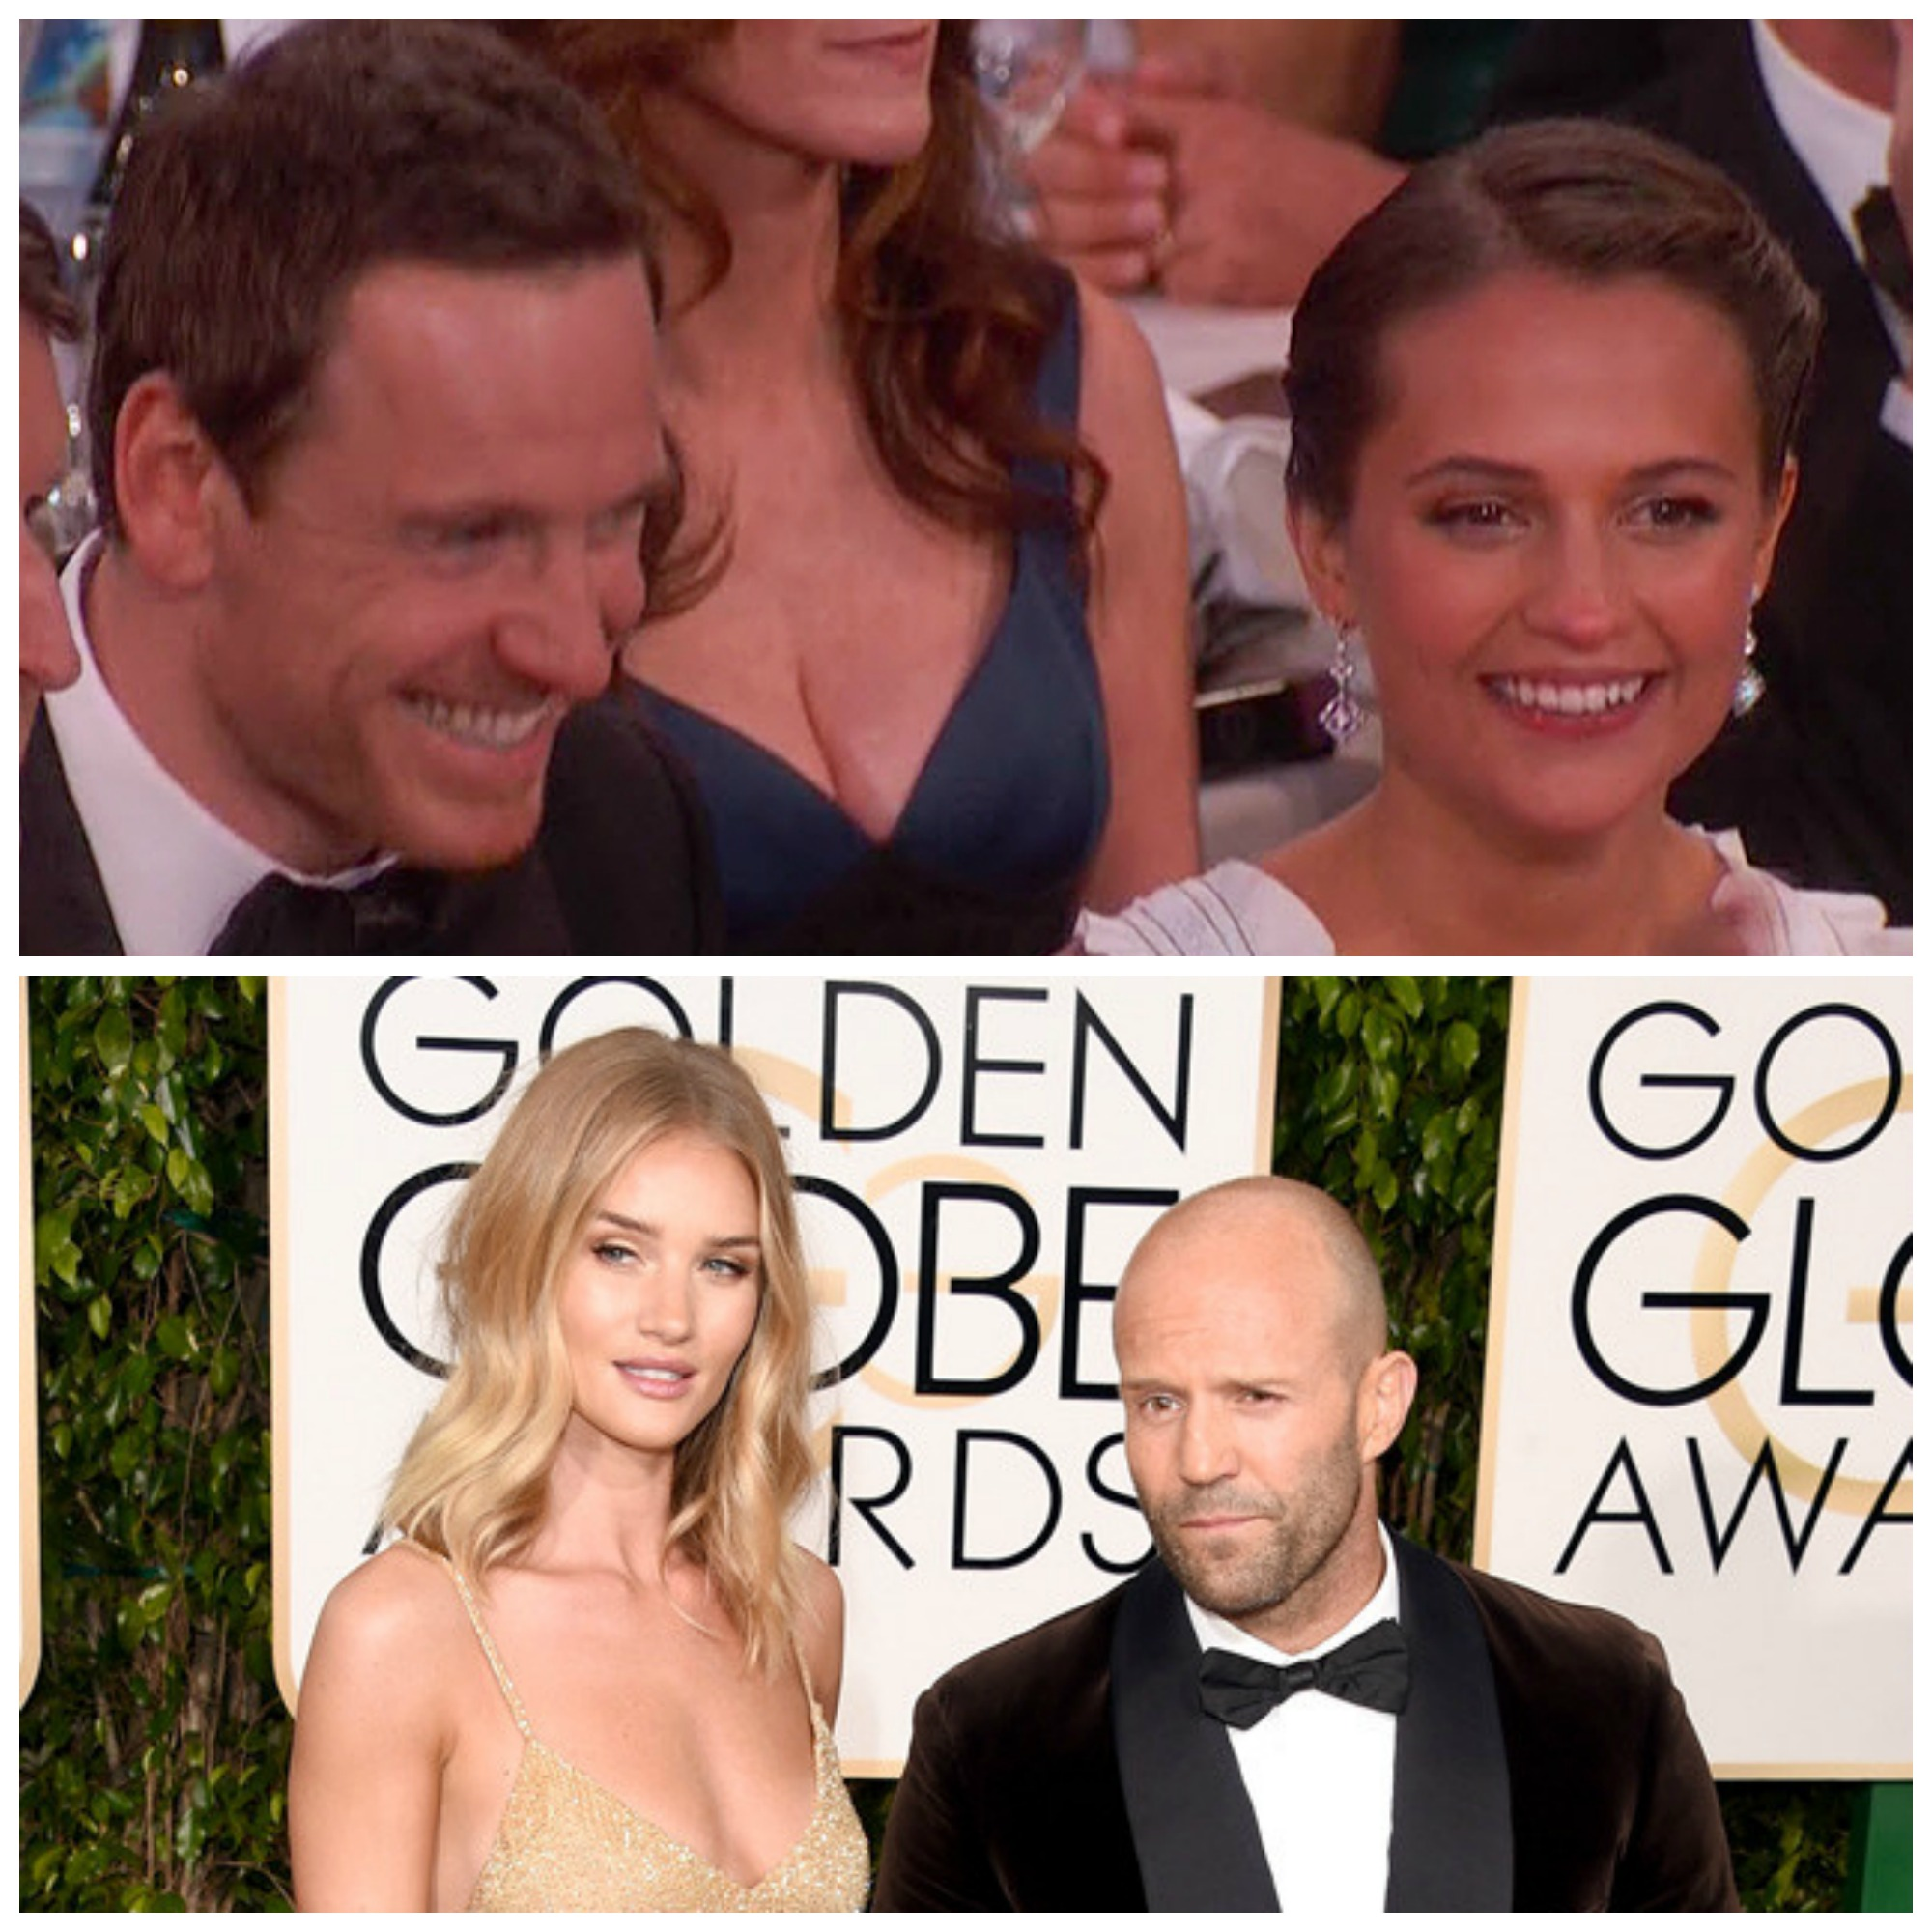 Jason Statham & Michael Fassbender Bring Love To The GOLDEN GLOBES! [PHOTOS]